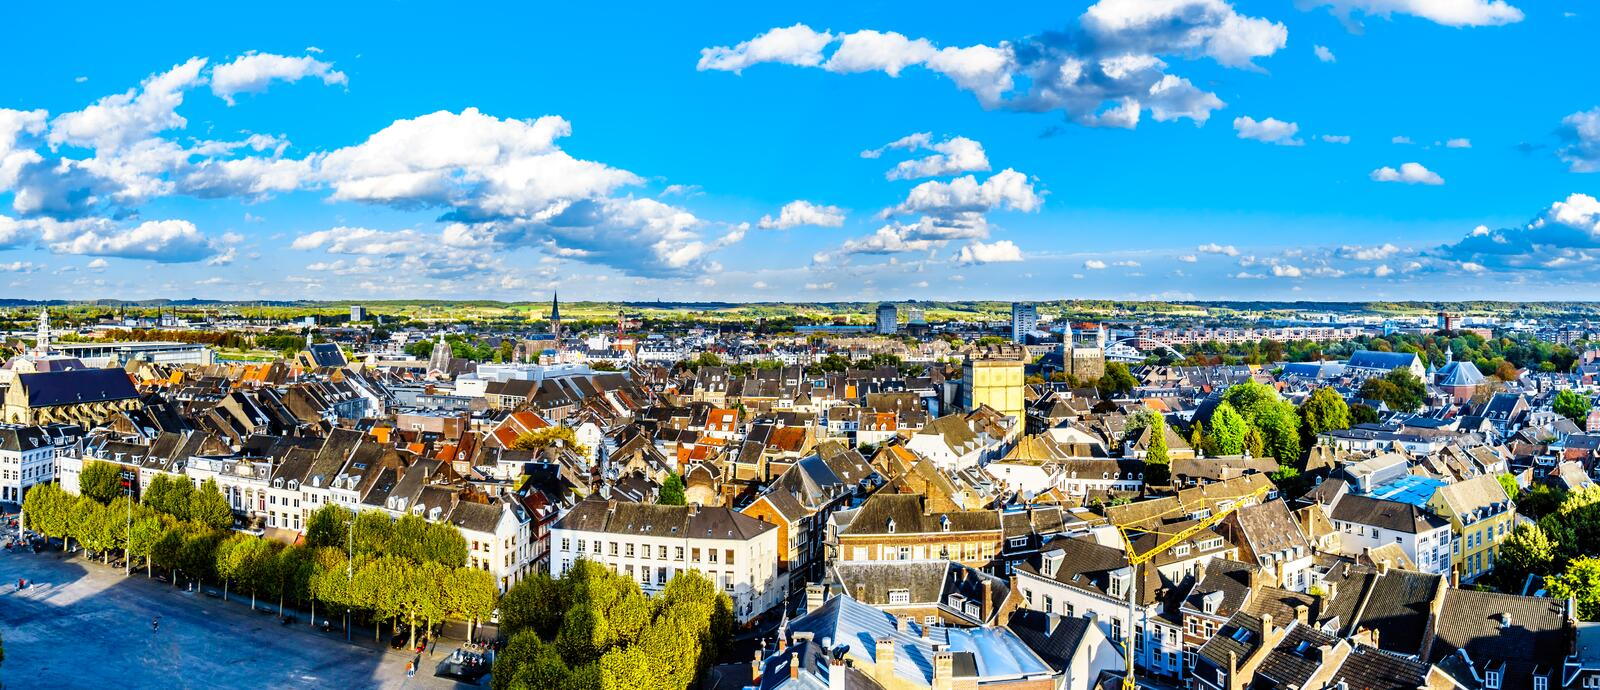 Aerial view of the historic city of Maastricht in the Netherlands as seen from the tower of the St.John Church royalty free stock image